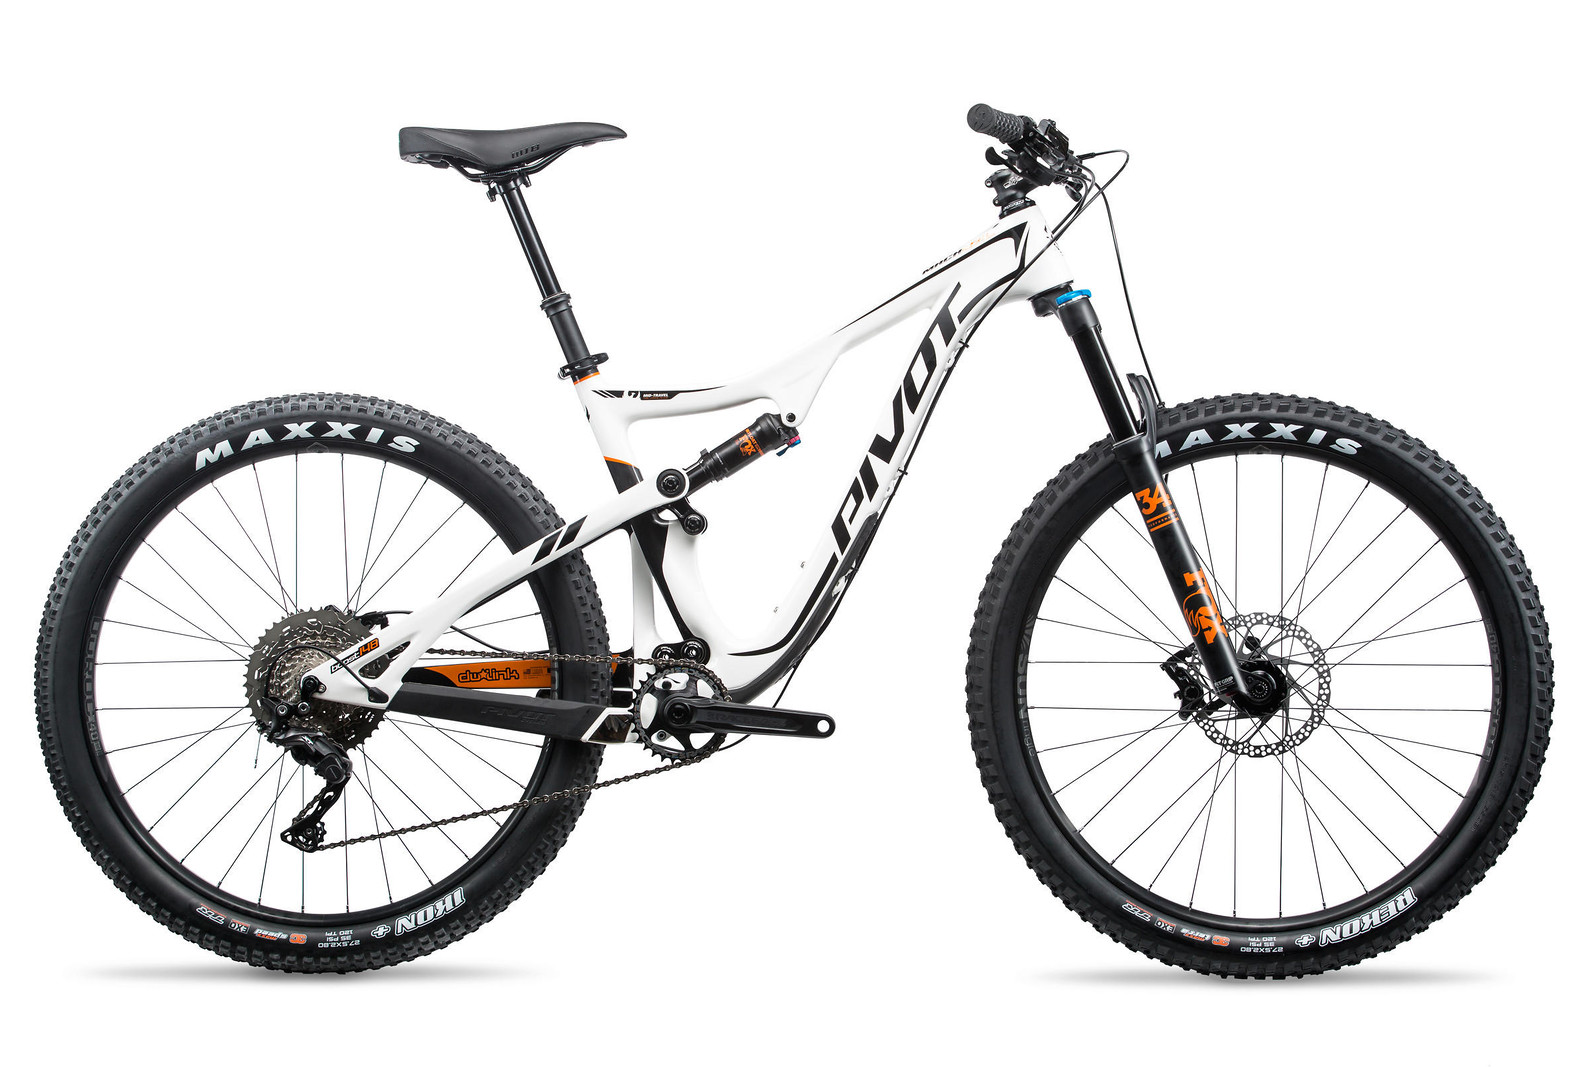 pivot-cycles-mach-429-trail-team-xtr-2x-27.5-294742-1